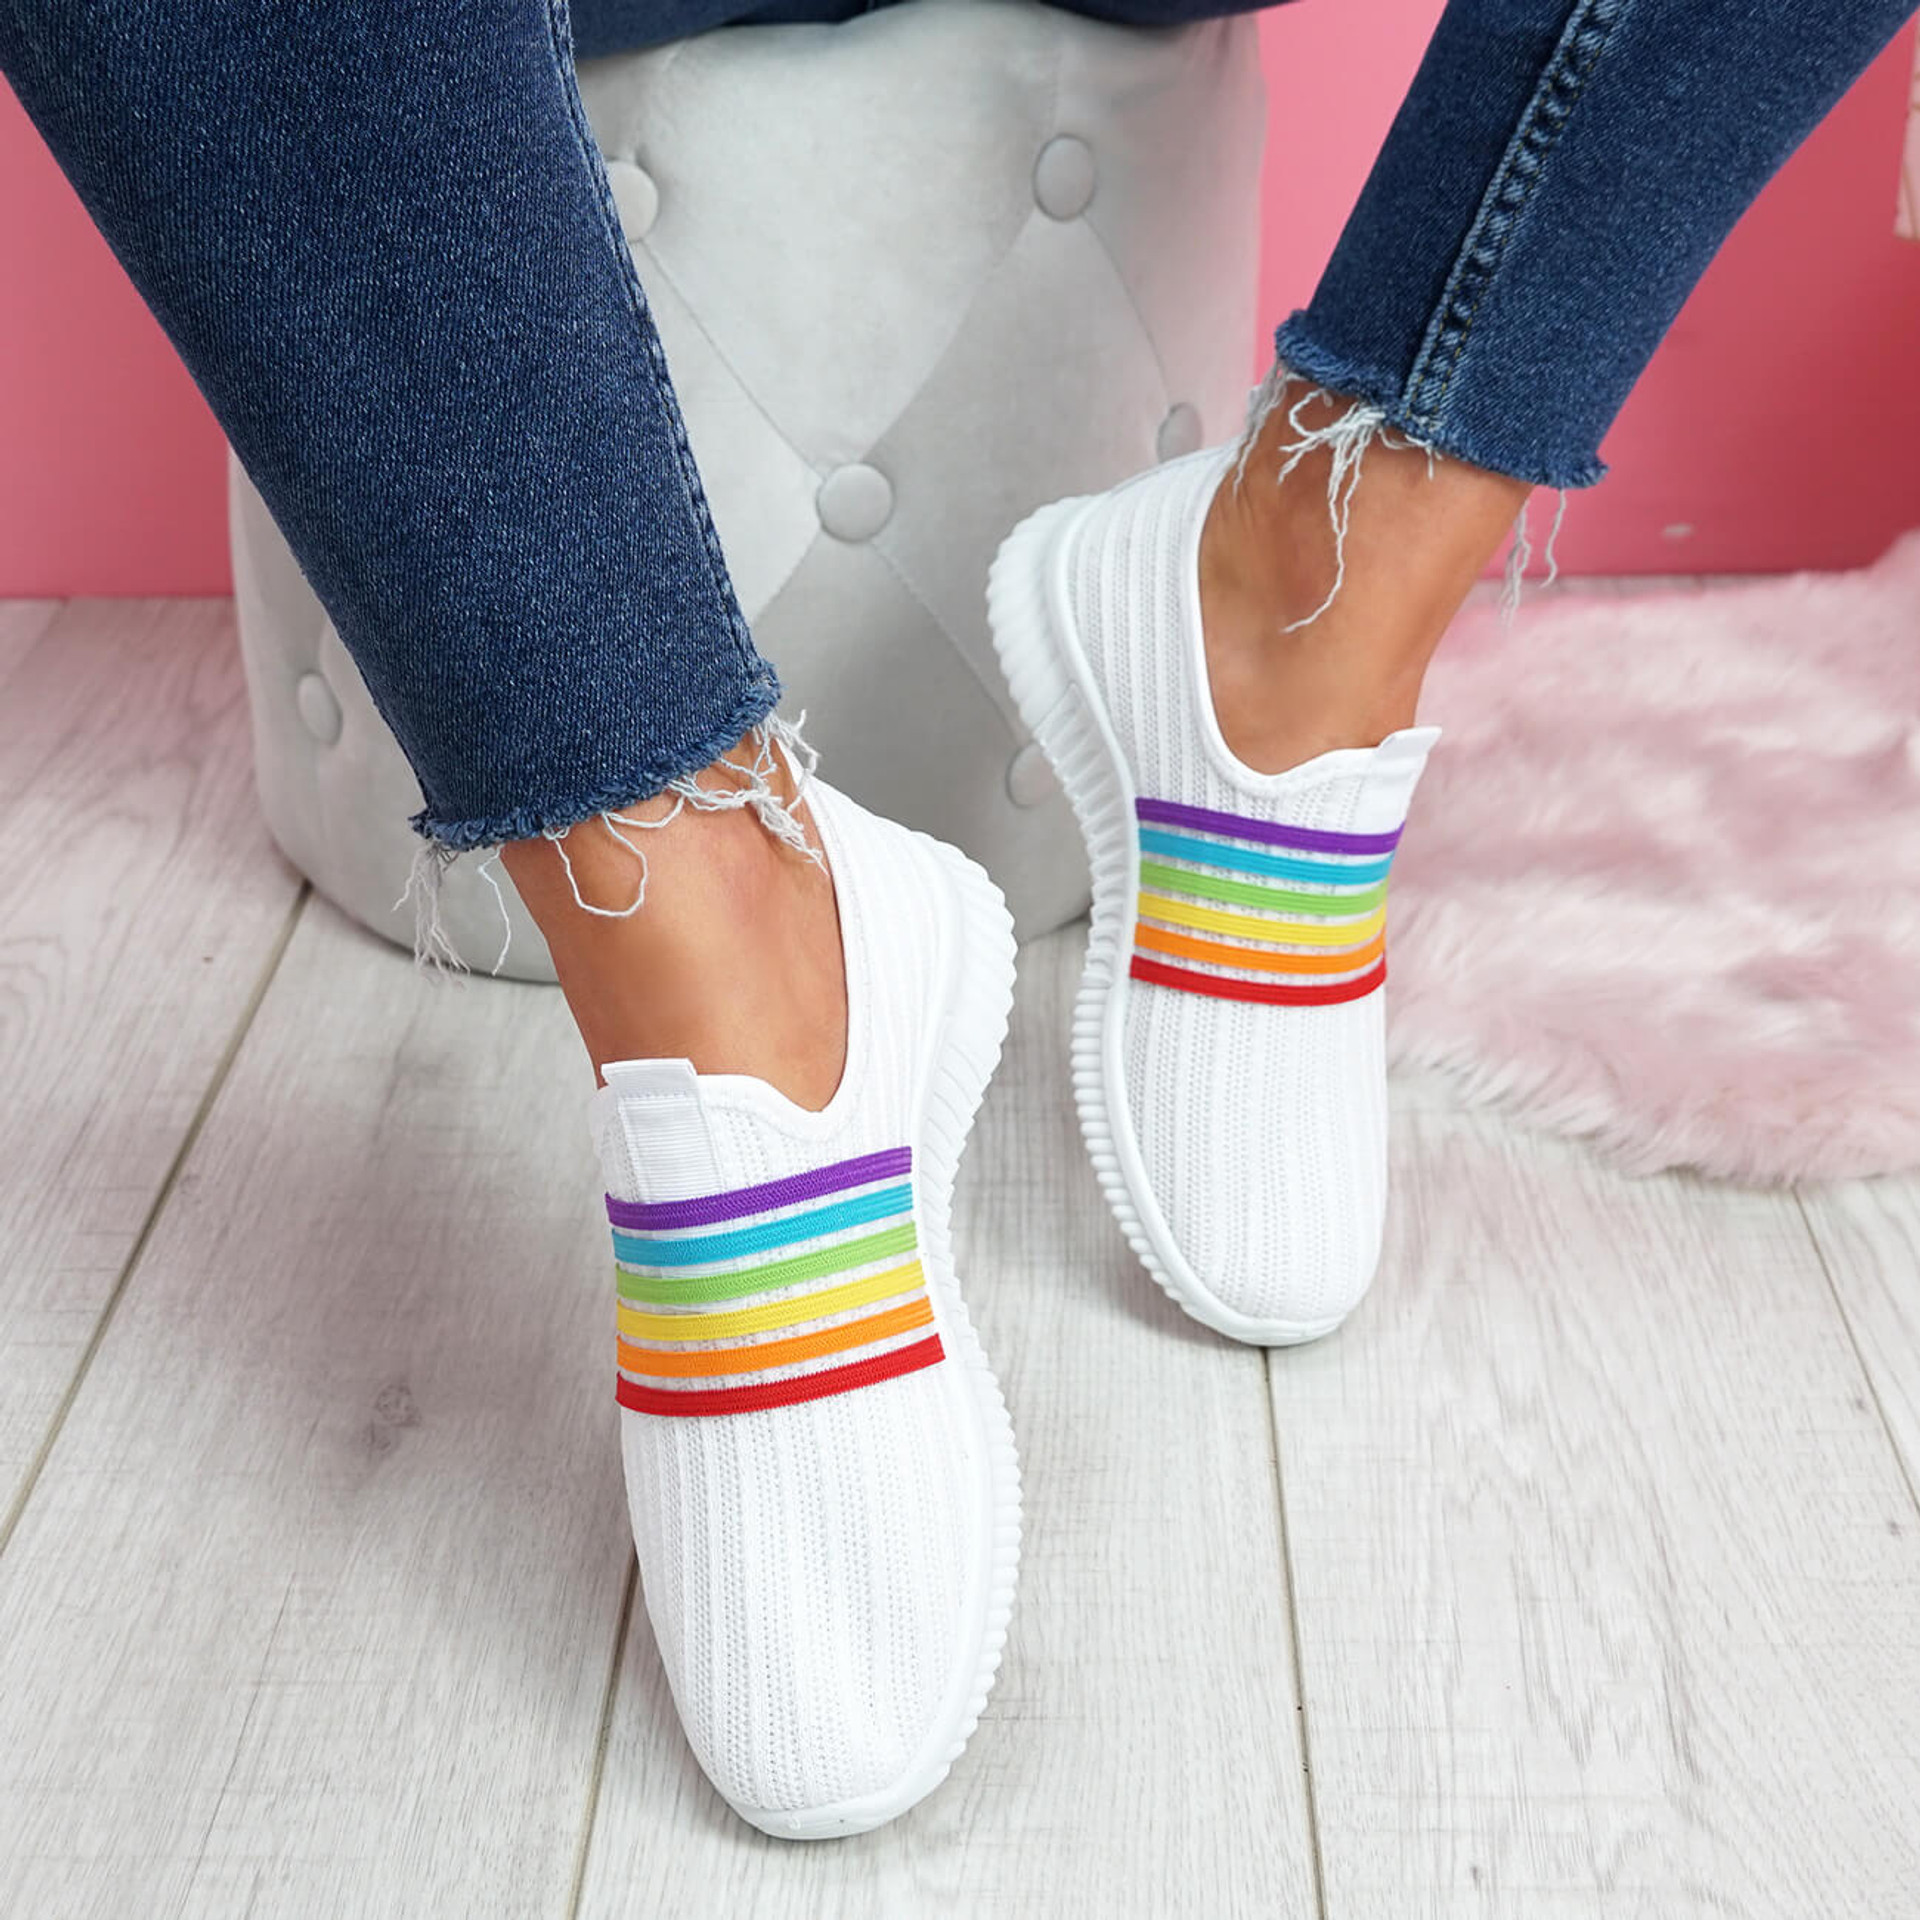 Ladies Slip On Rainbow Pattern Sneakers Knitted Fashion Trainers Heel Flat Shoes